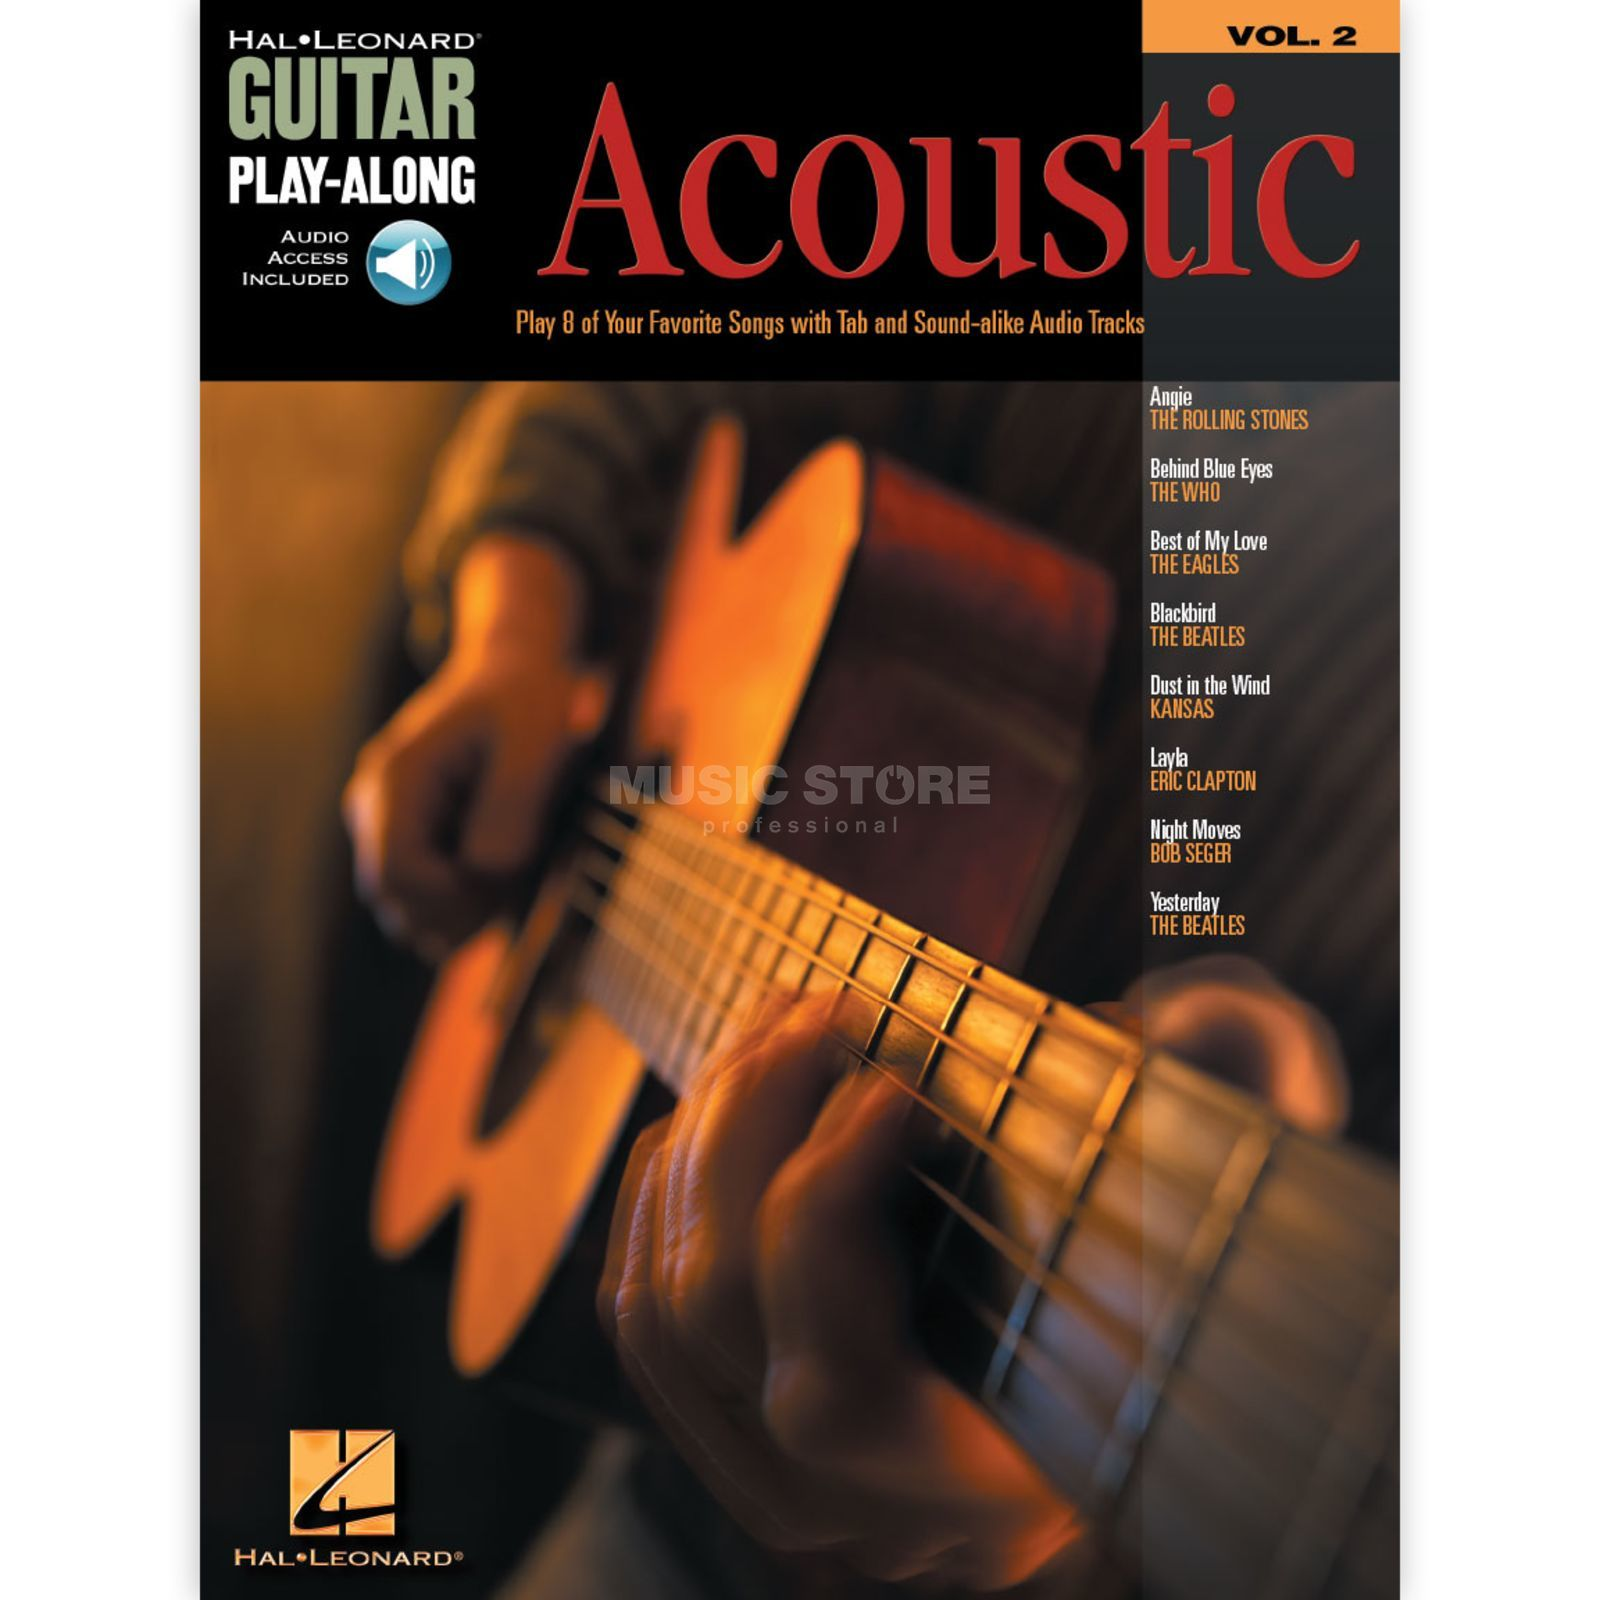 Hal Leonard Guitar Play-Along: Acoustic Vol. 2, TAB und CD Produktbild